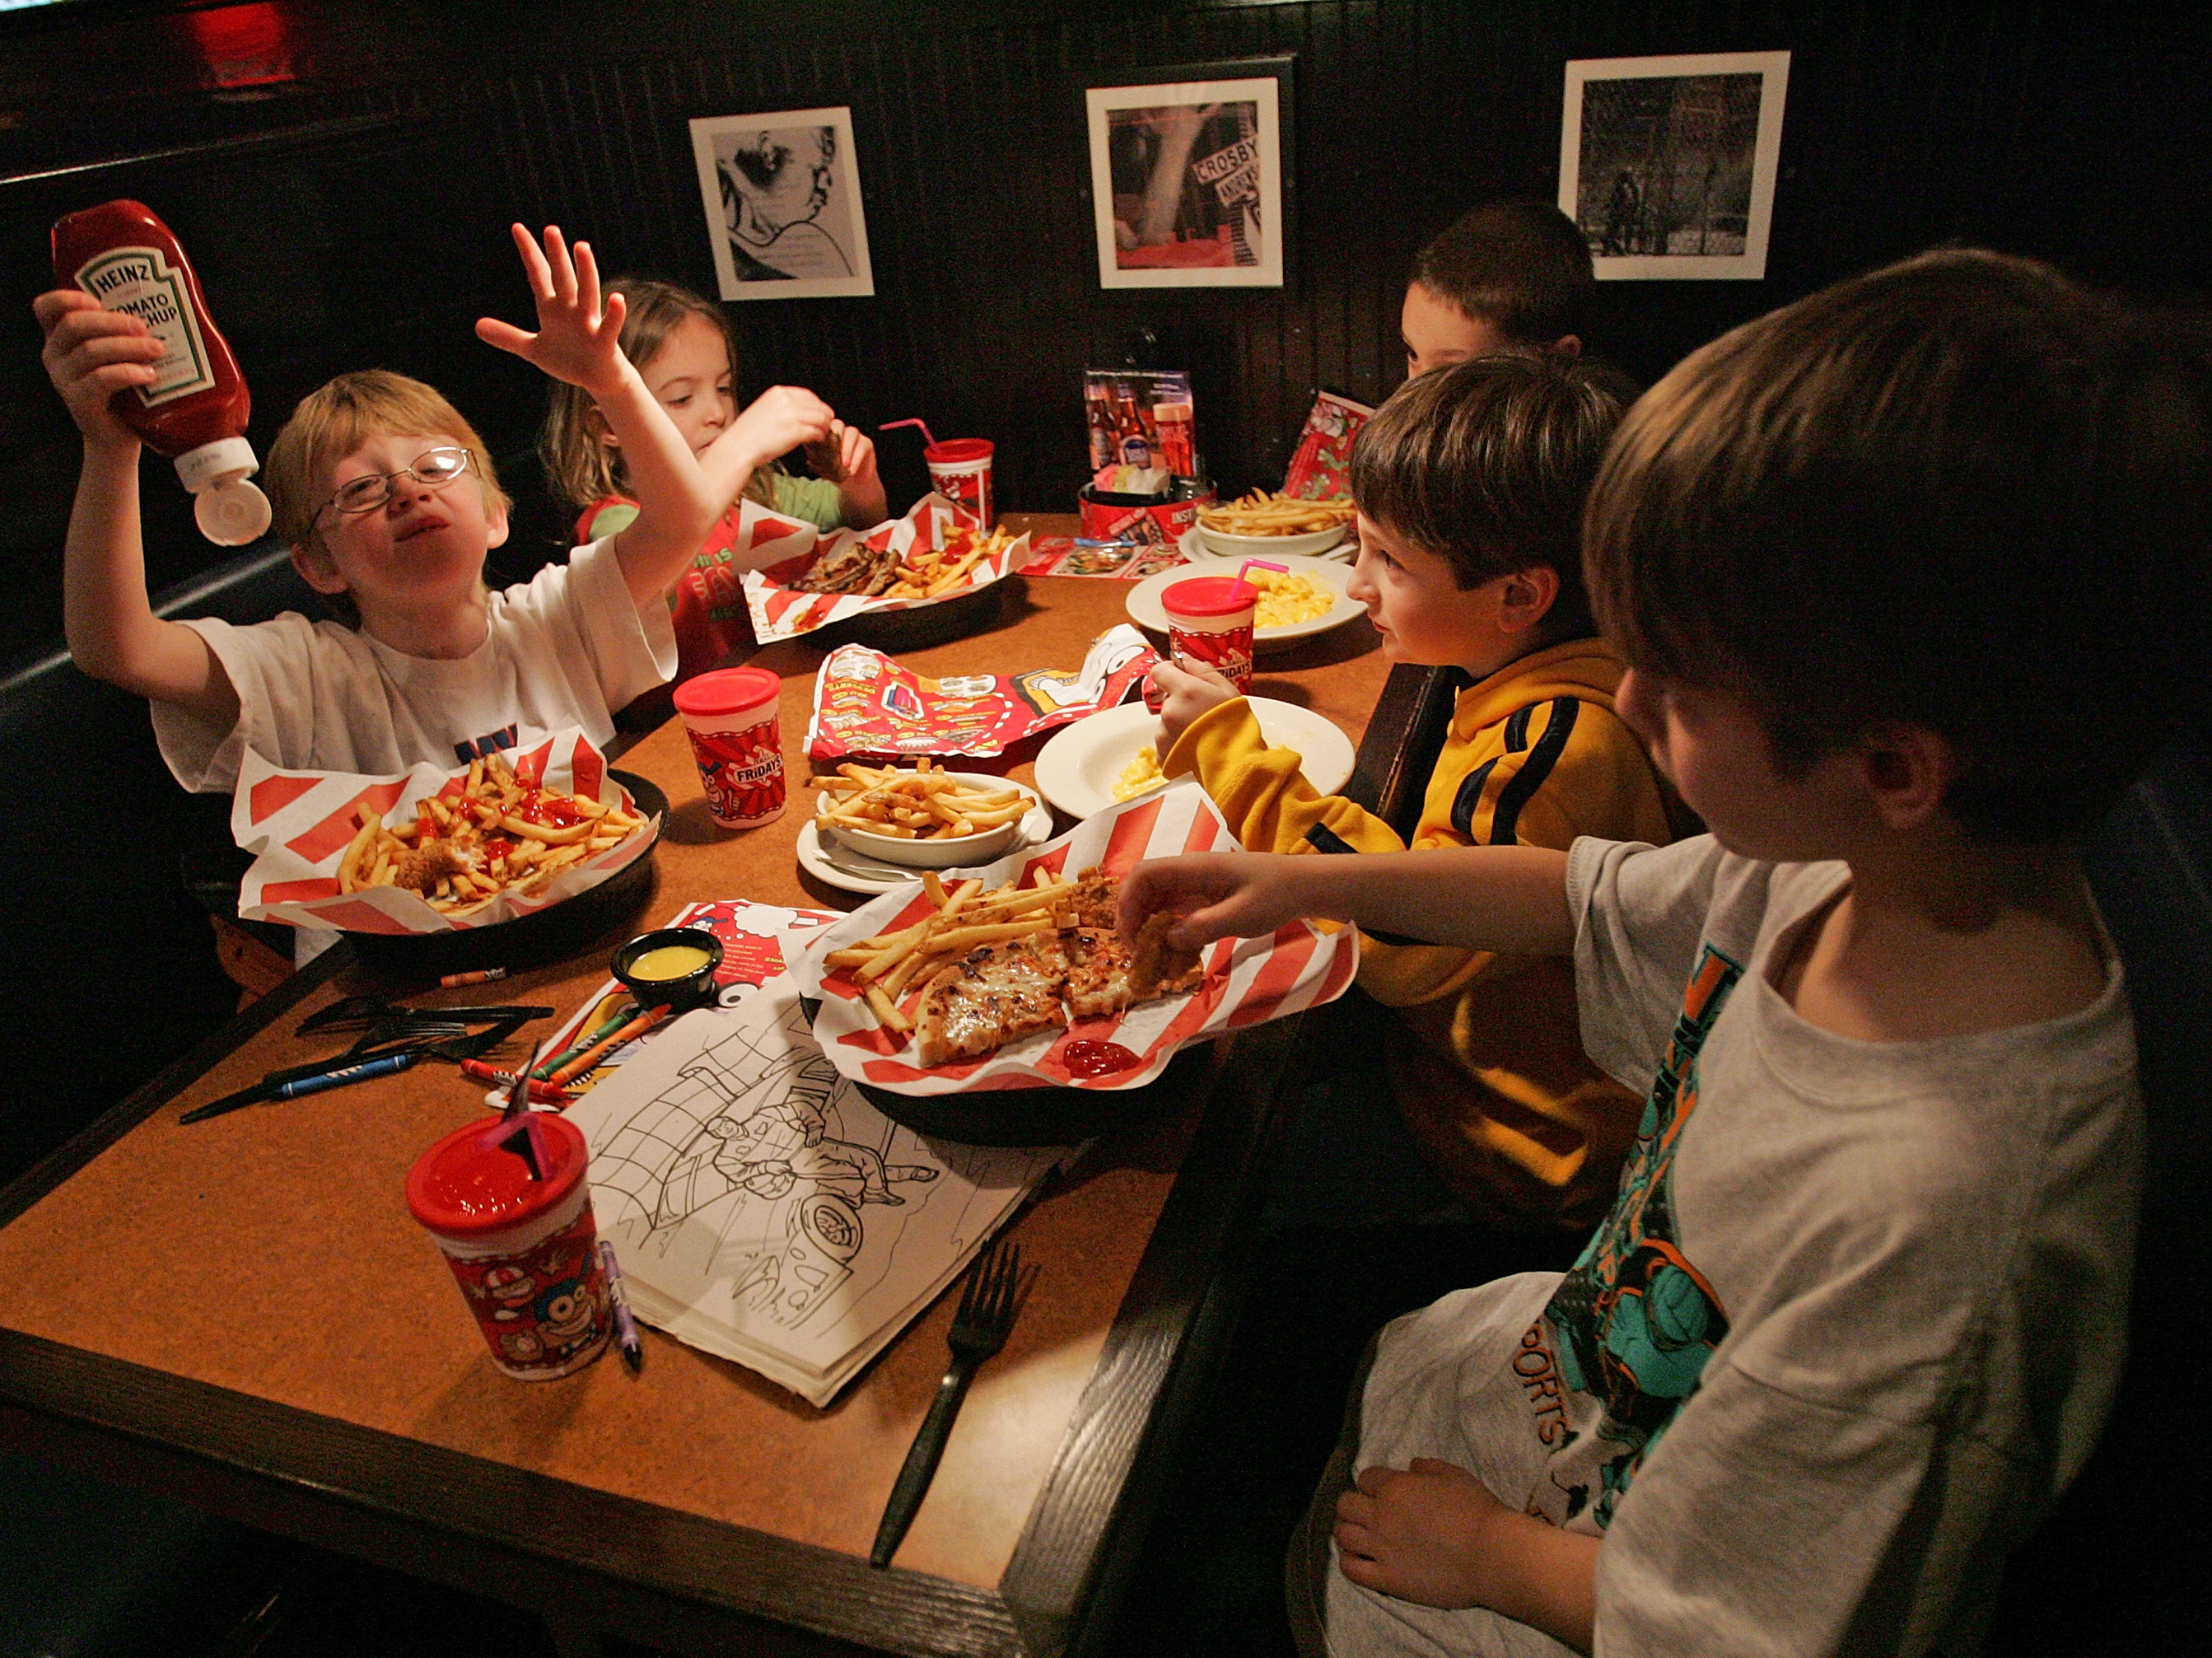 Restaurant meals mean more calories and soda for kids and for Kids restaurants